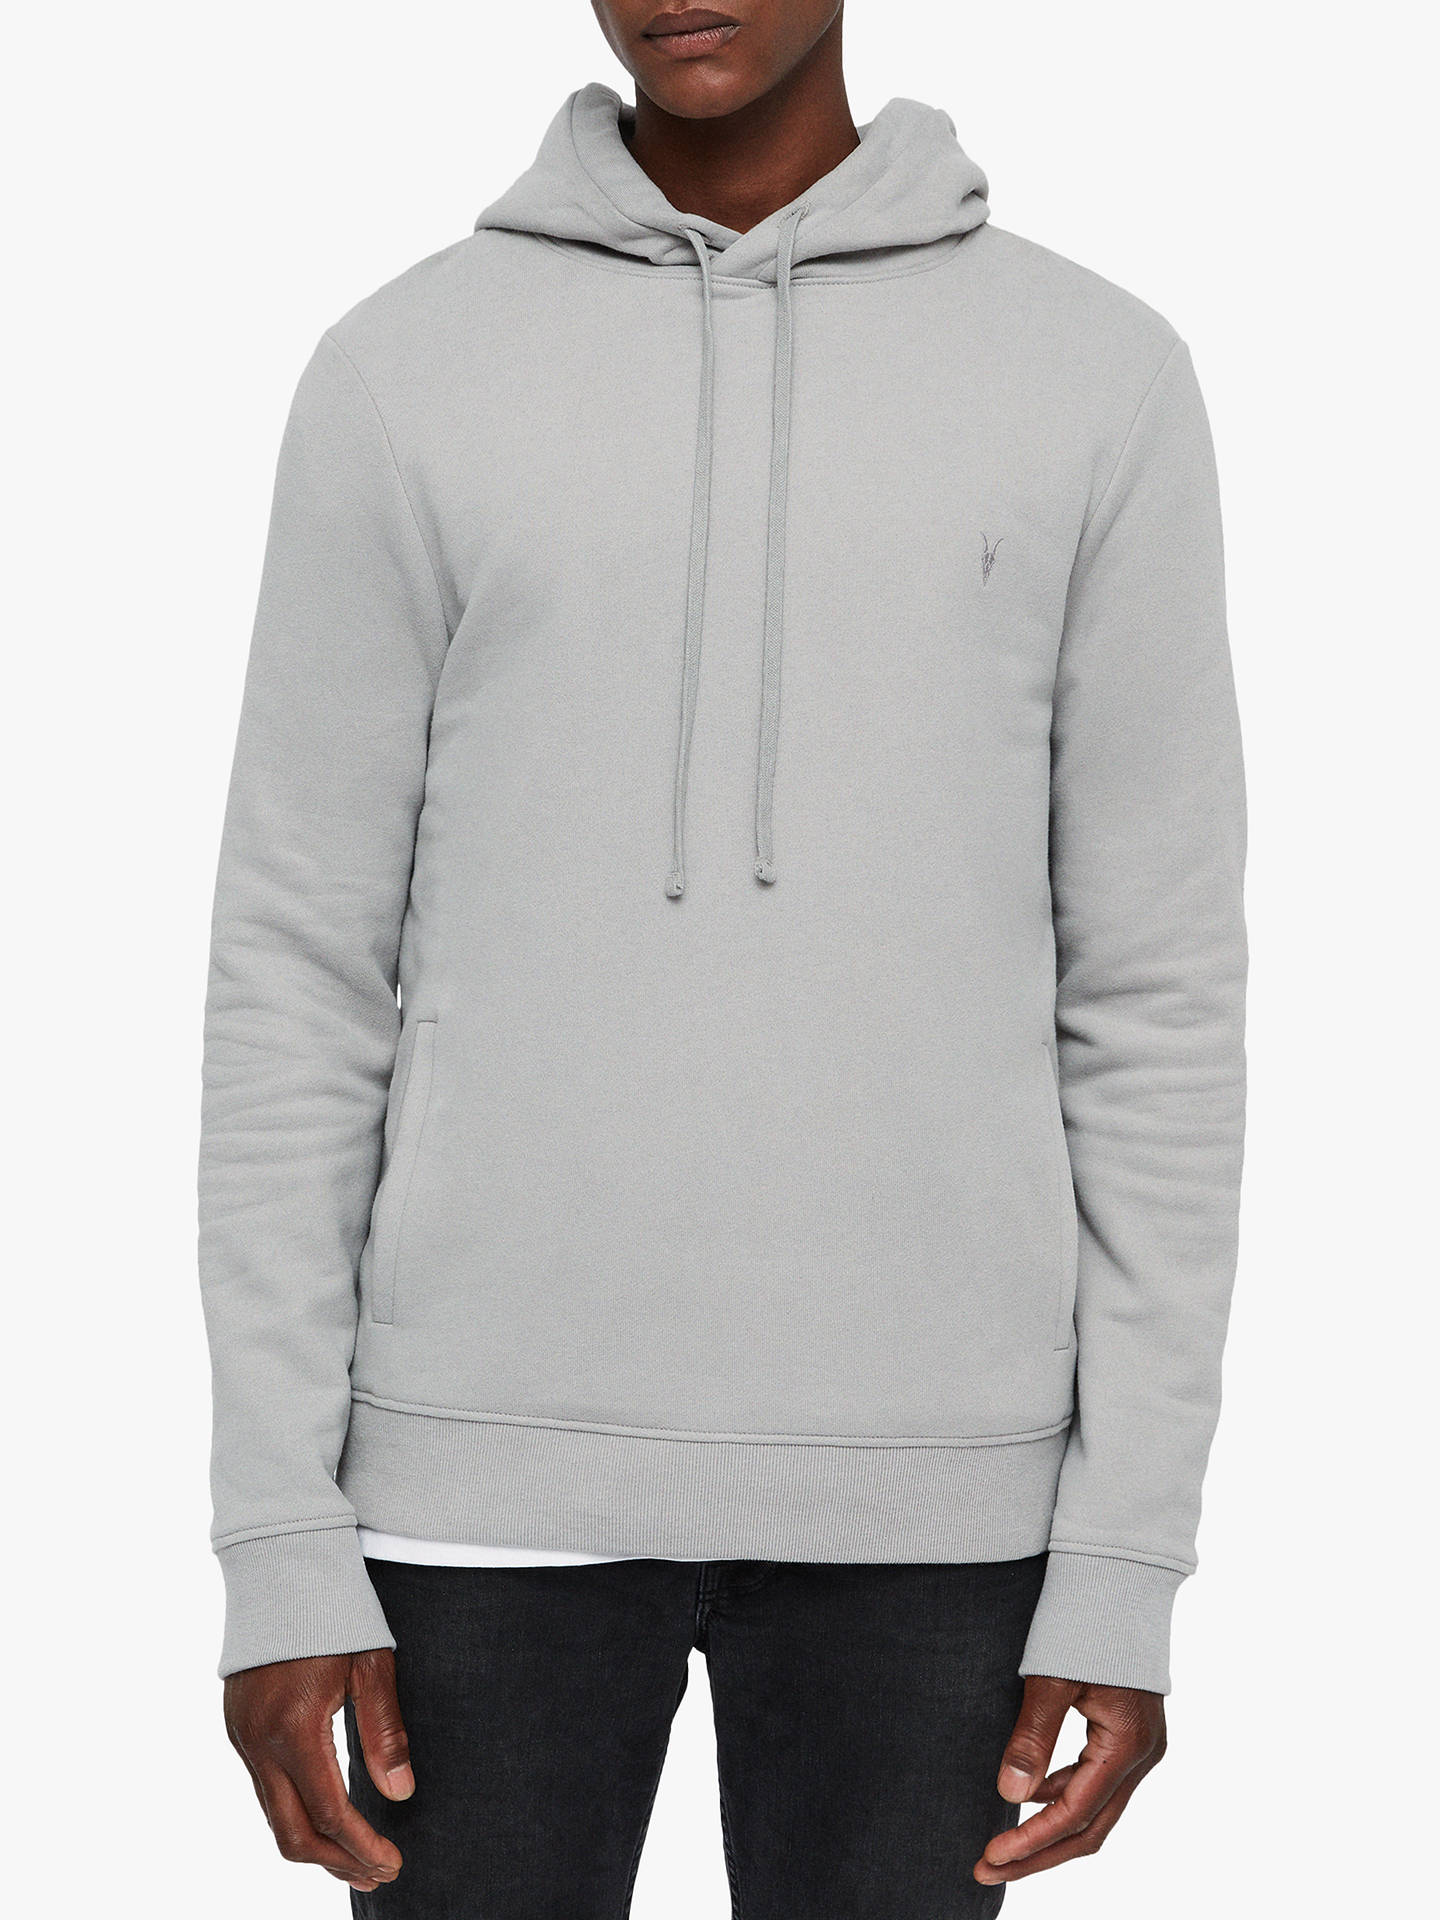 new style 30542 19912 AllSaints Raven Hoodie at John Lewis & Partners